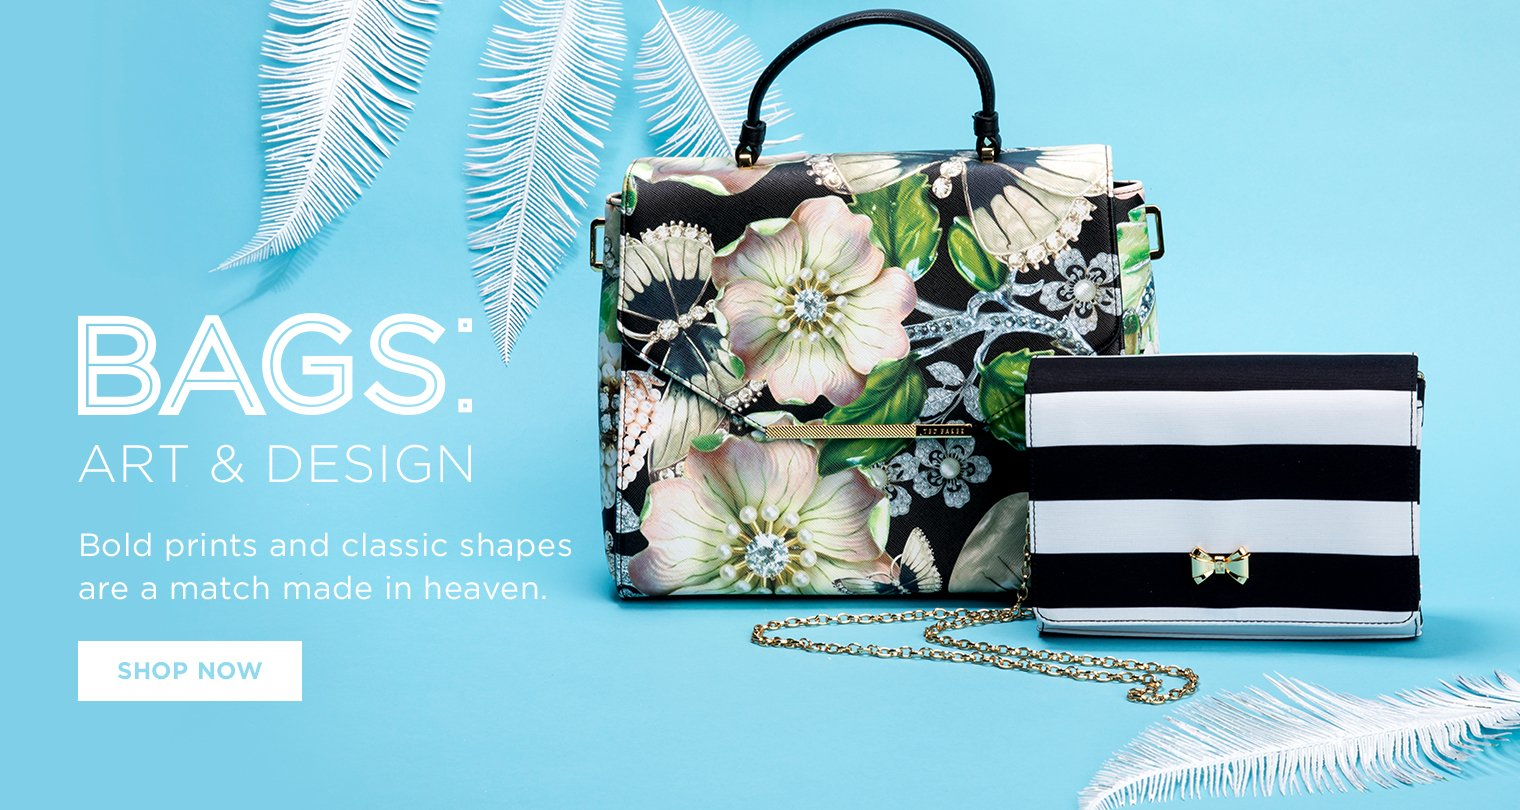 Bags: Art and Design: Bold prints and classic shapes are a match made in heaven.